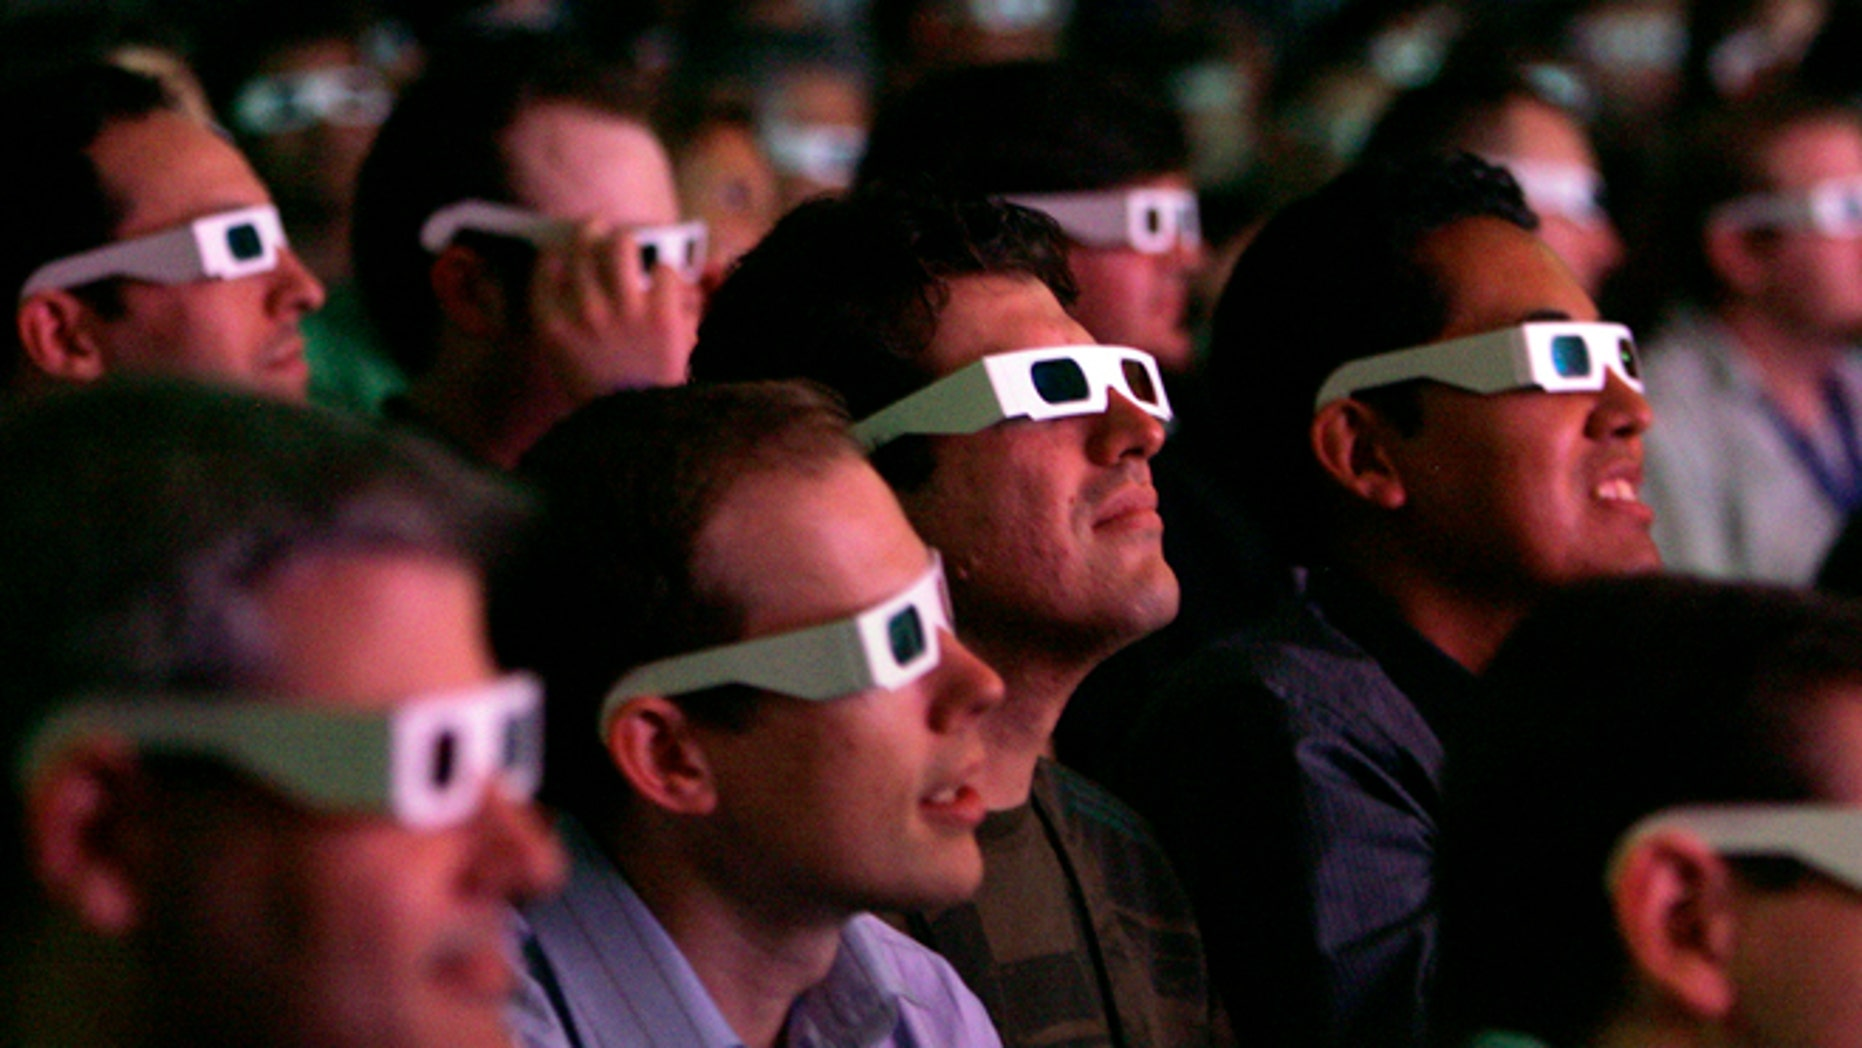 3D films are arguably more vivid, realistic -- and scairer. Dolby has a new technology that promises to make them sound scarier, too.